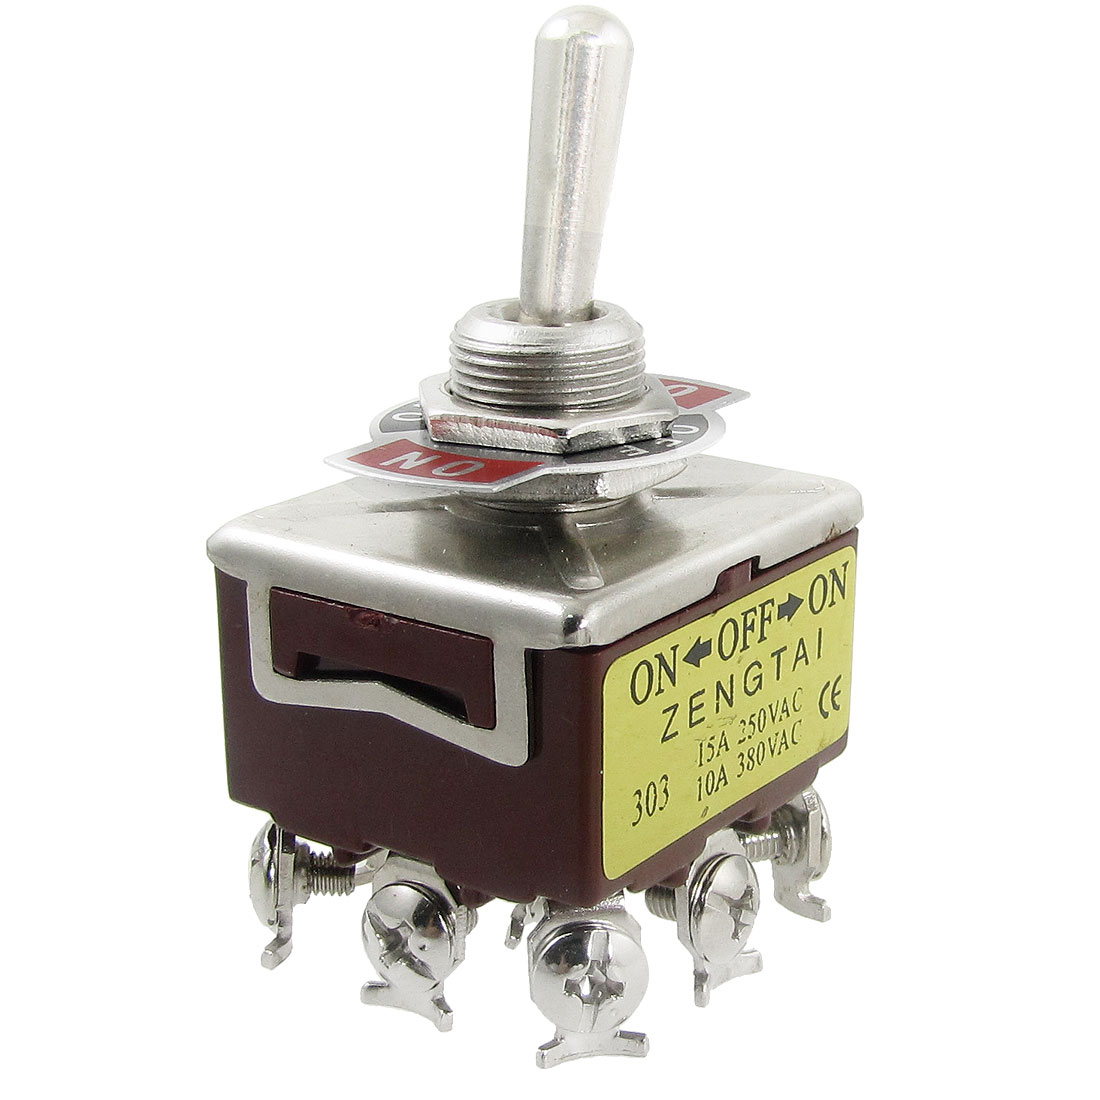 AC 250V 15A 380V 10A ON/OFF/ON 3 Position 3PDT 9 Screw Terminals Toggle Switch